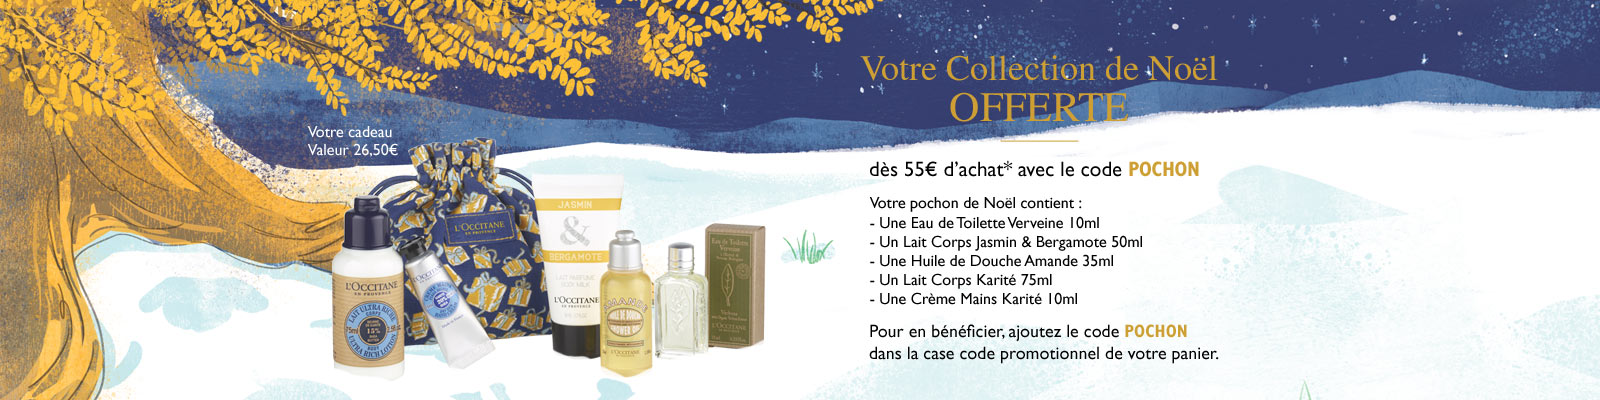 Collection de Noël - L'Occitane en Provence